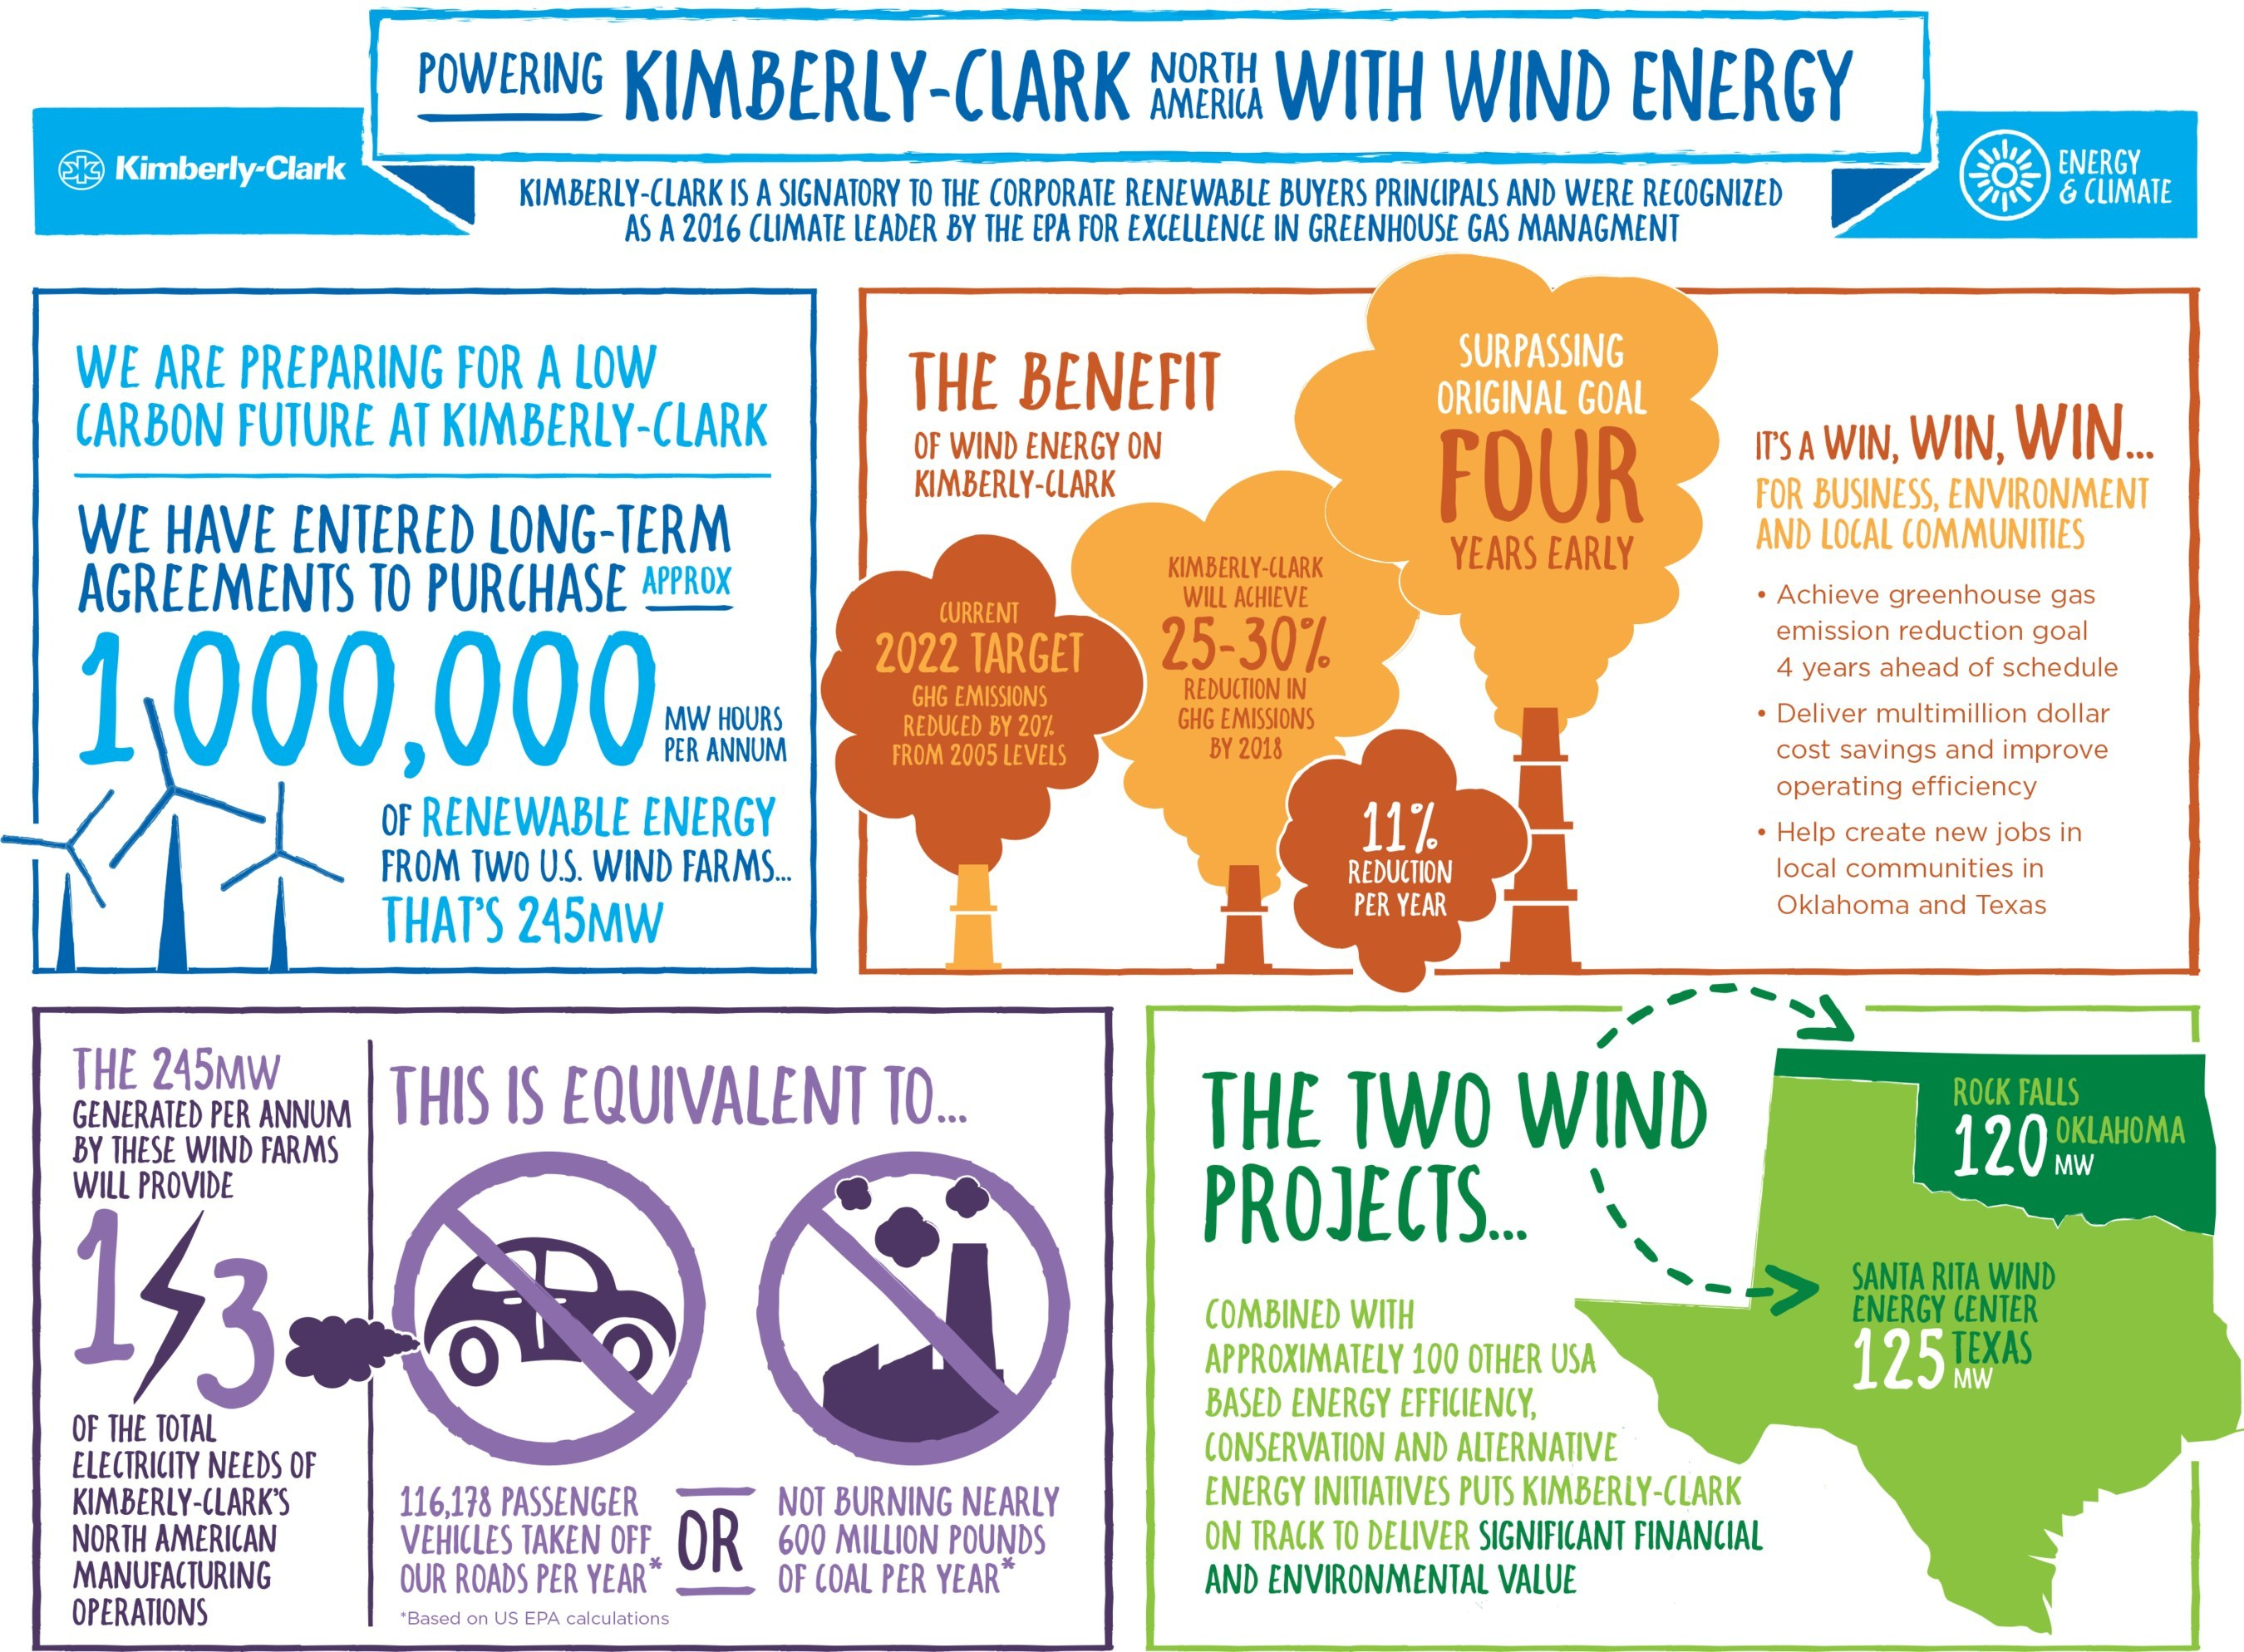 Kimberly-Clark to power North American mills with renewable wind energy.